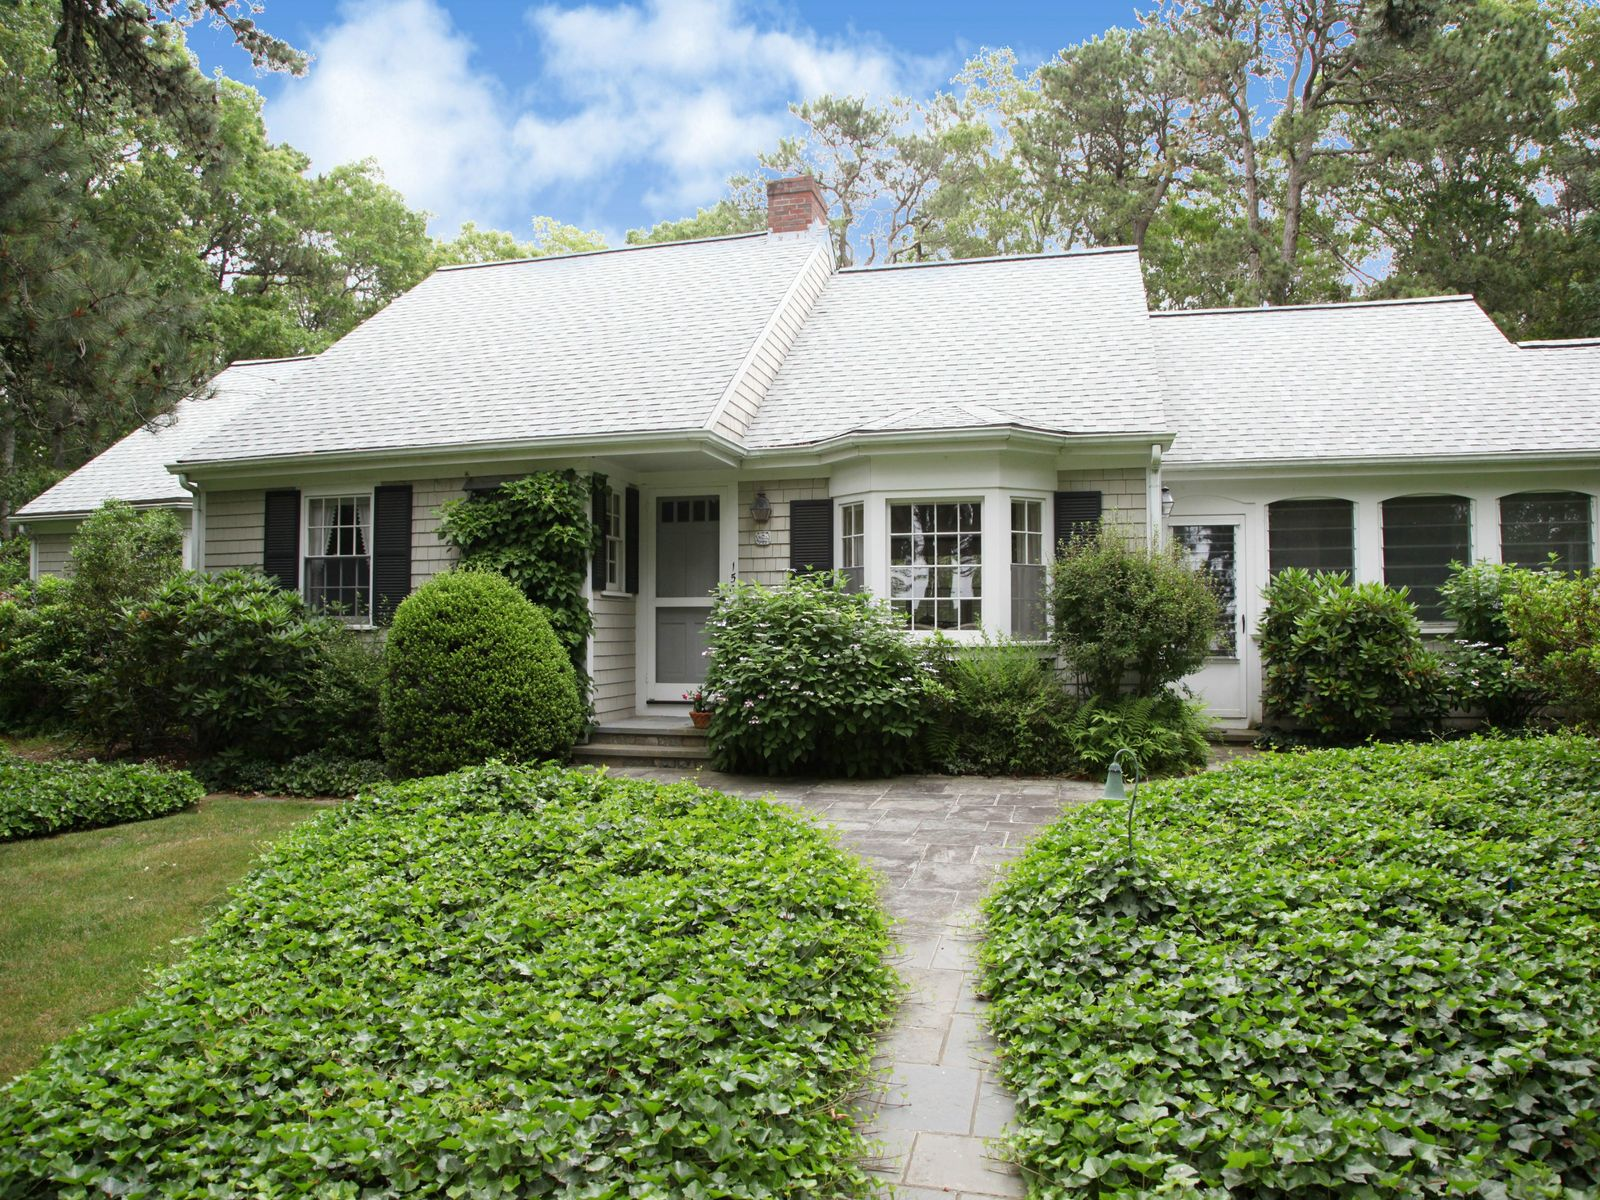 Wianno Private Setting, Osterville MA Single Family Home - Cape Cod Real Estate